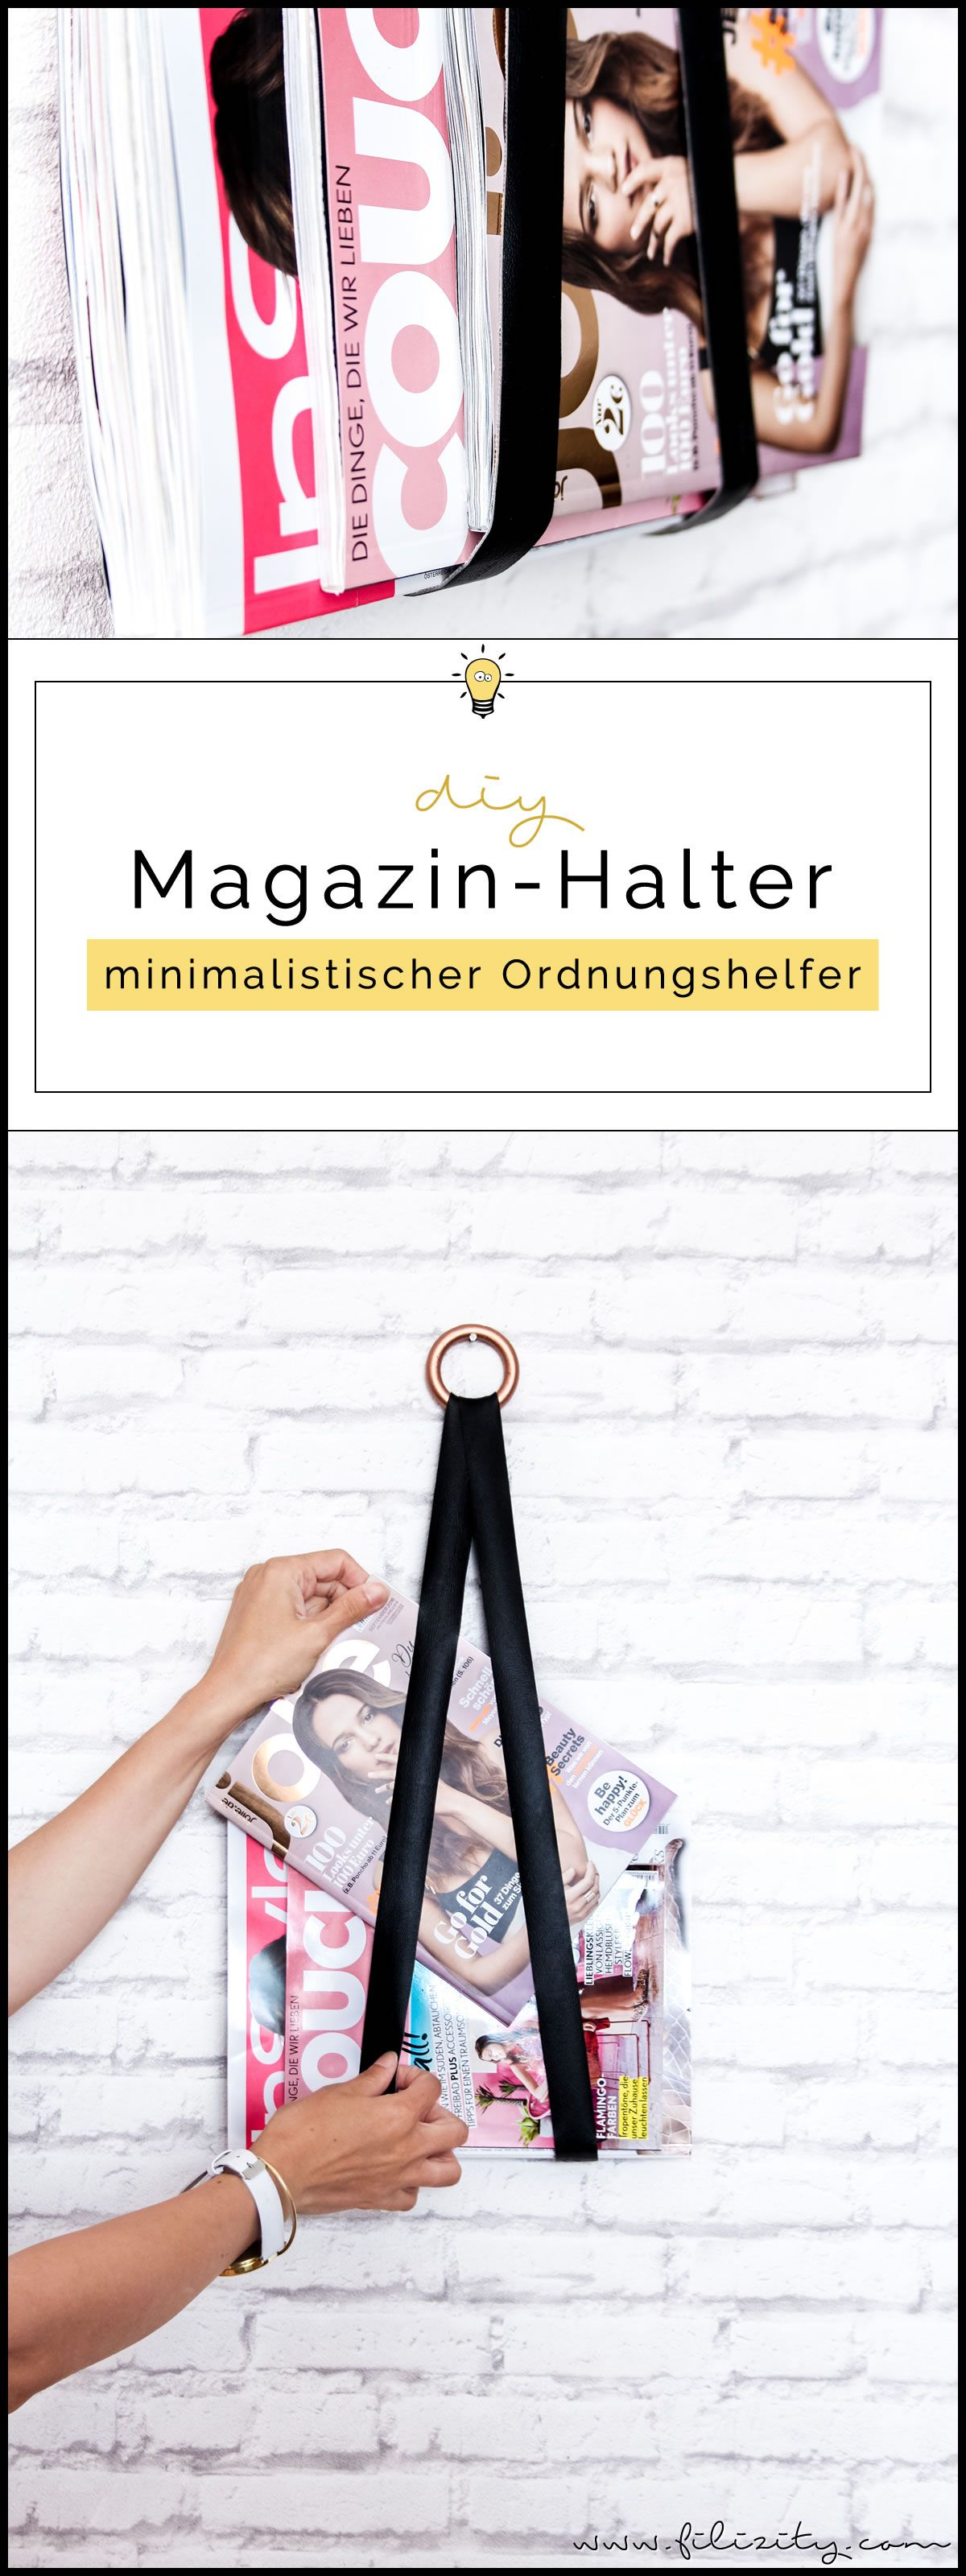 diy magazin halter diy basteln selbermachen pinterest diy deko deko und basteln. Black Bedroom Furniture Sets. Home Design Ideas